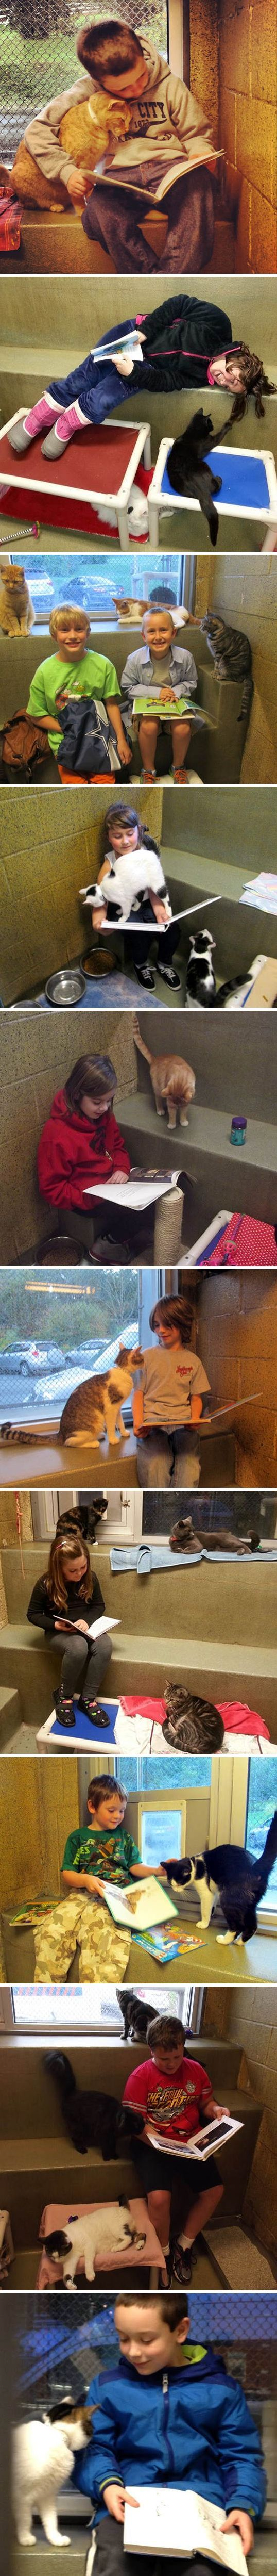 Children Read To Shelter Cats To Soothe Them - At Animal Rescue League of Berks County, children can read to shelter cats to soothe them. The cats adore them and are always delighted to have these little humans there to keep them company.